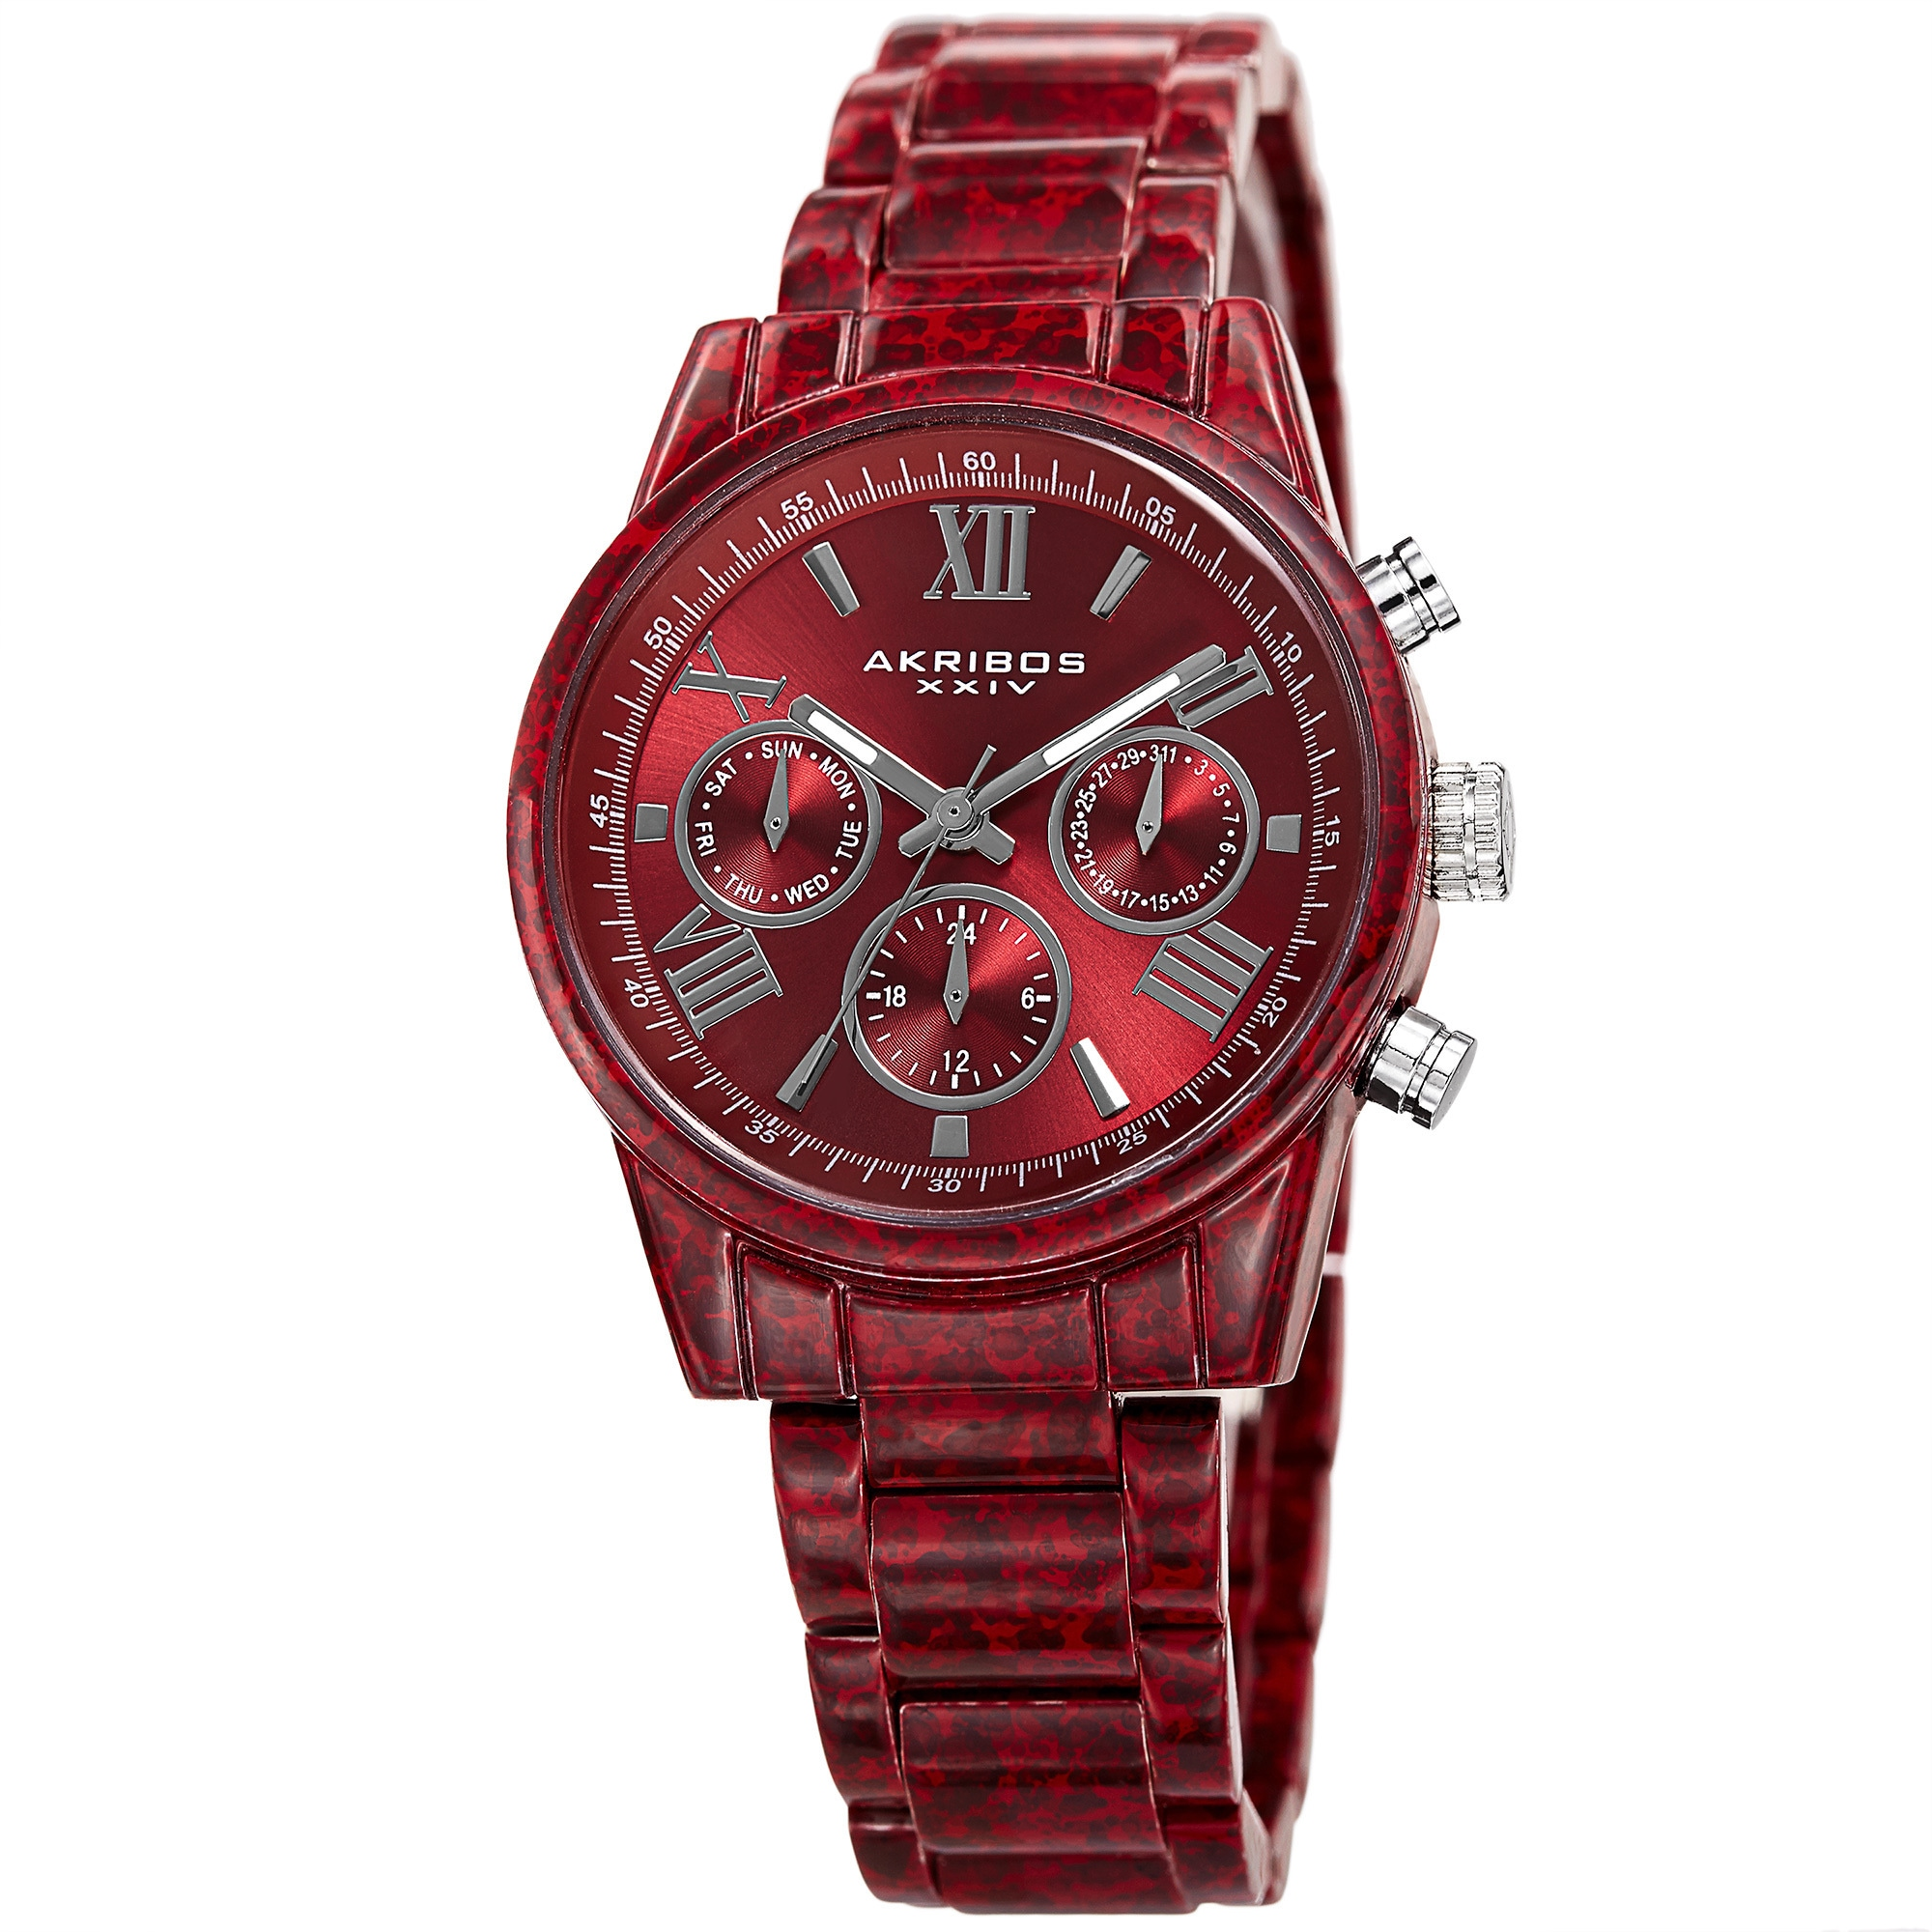 guess leather watches lyst view accessories red in fruiticious watch analog fullscreen